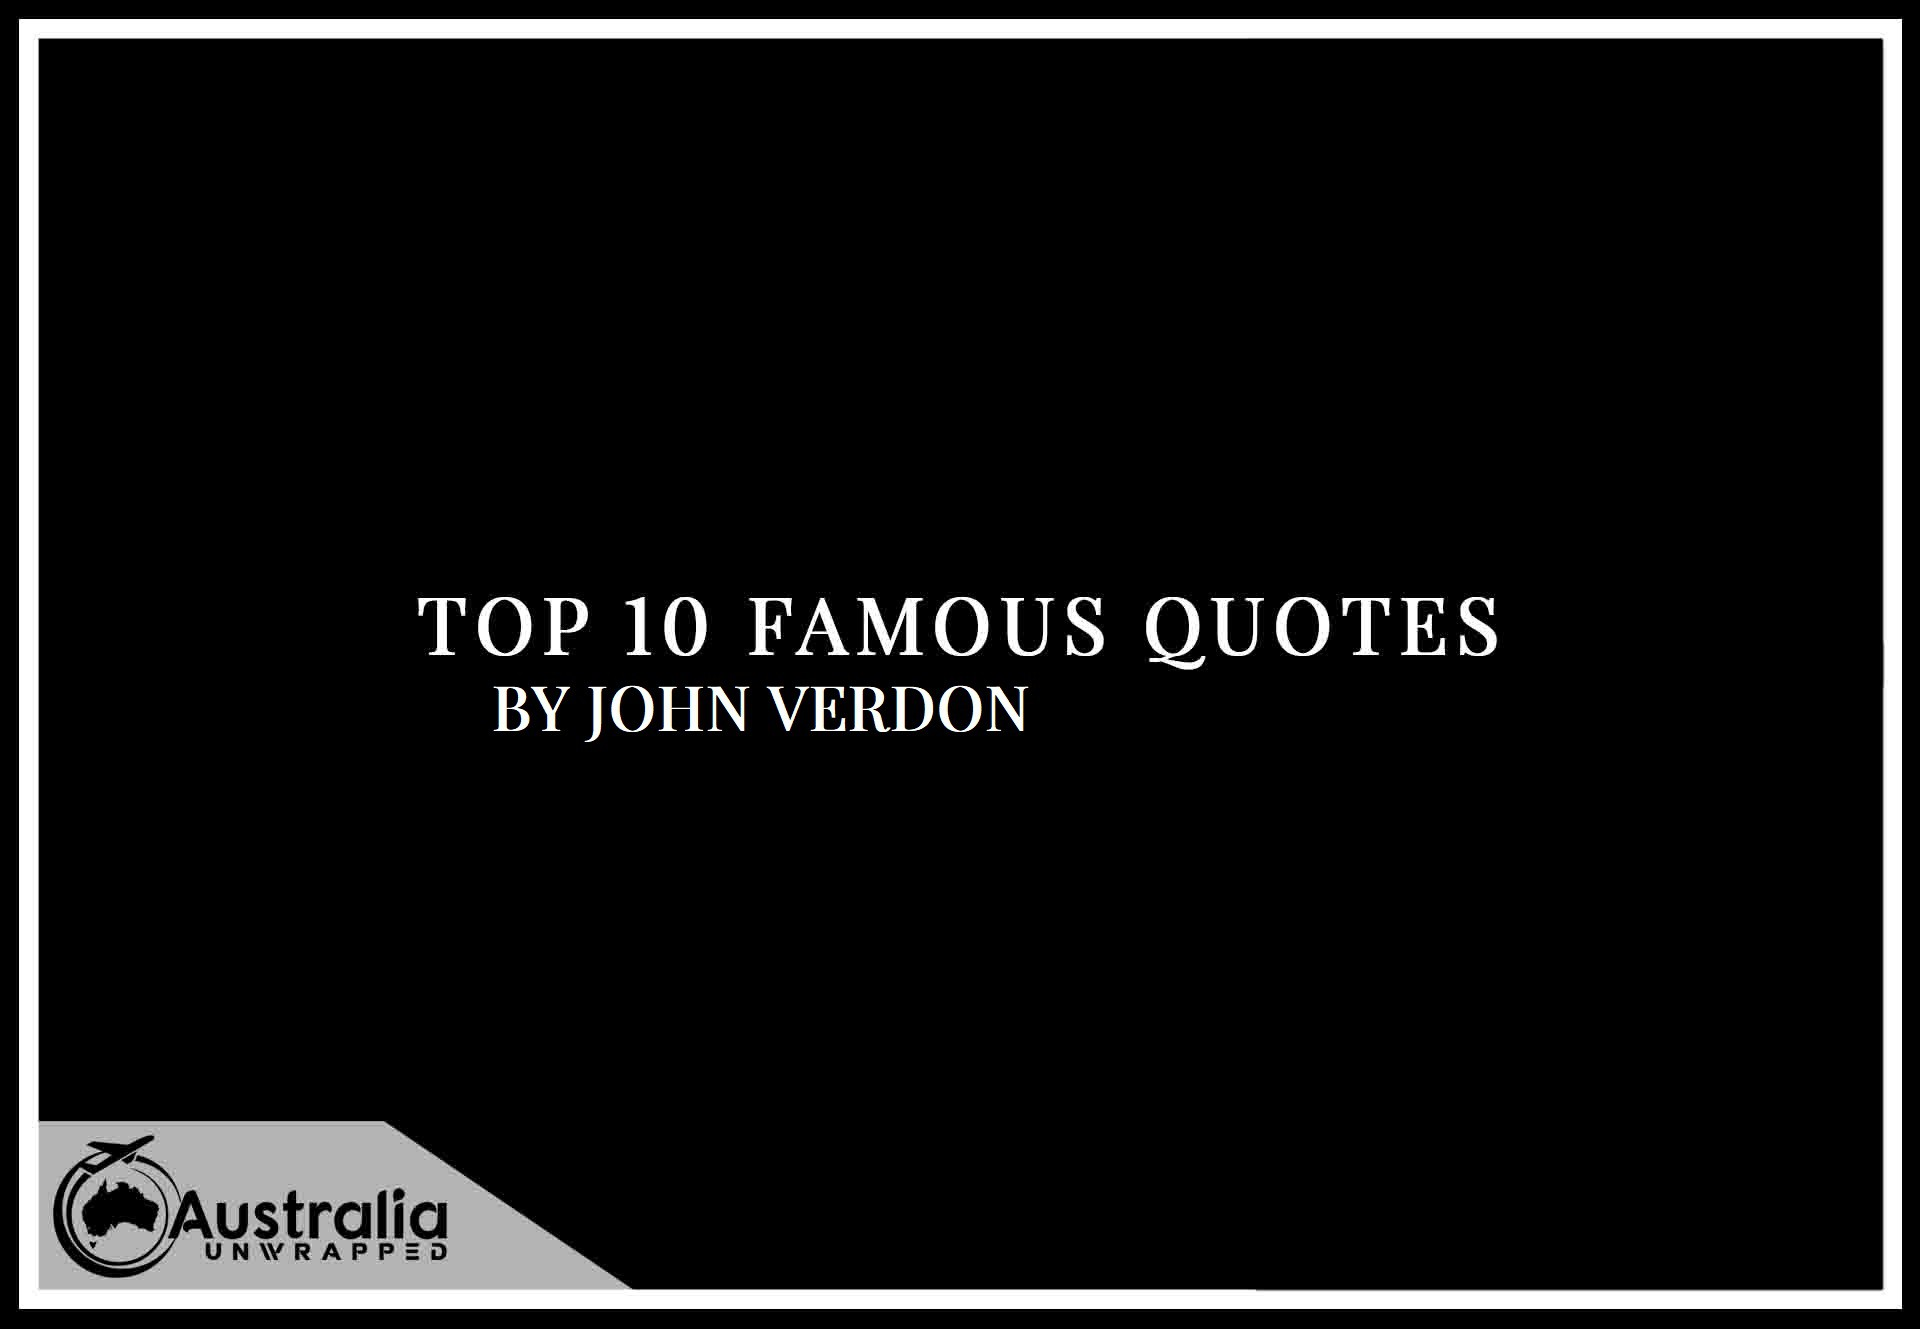 Top 10 Famous Quotes by Author John Verdon